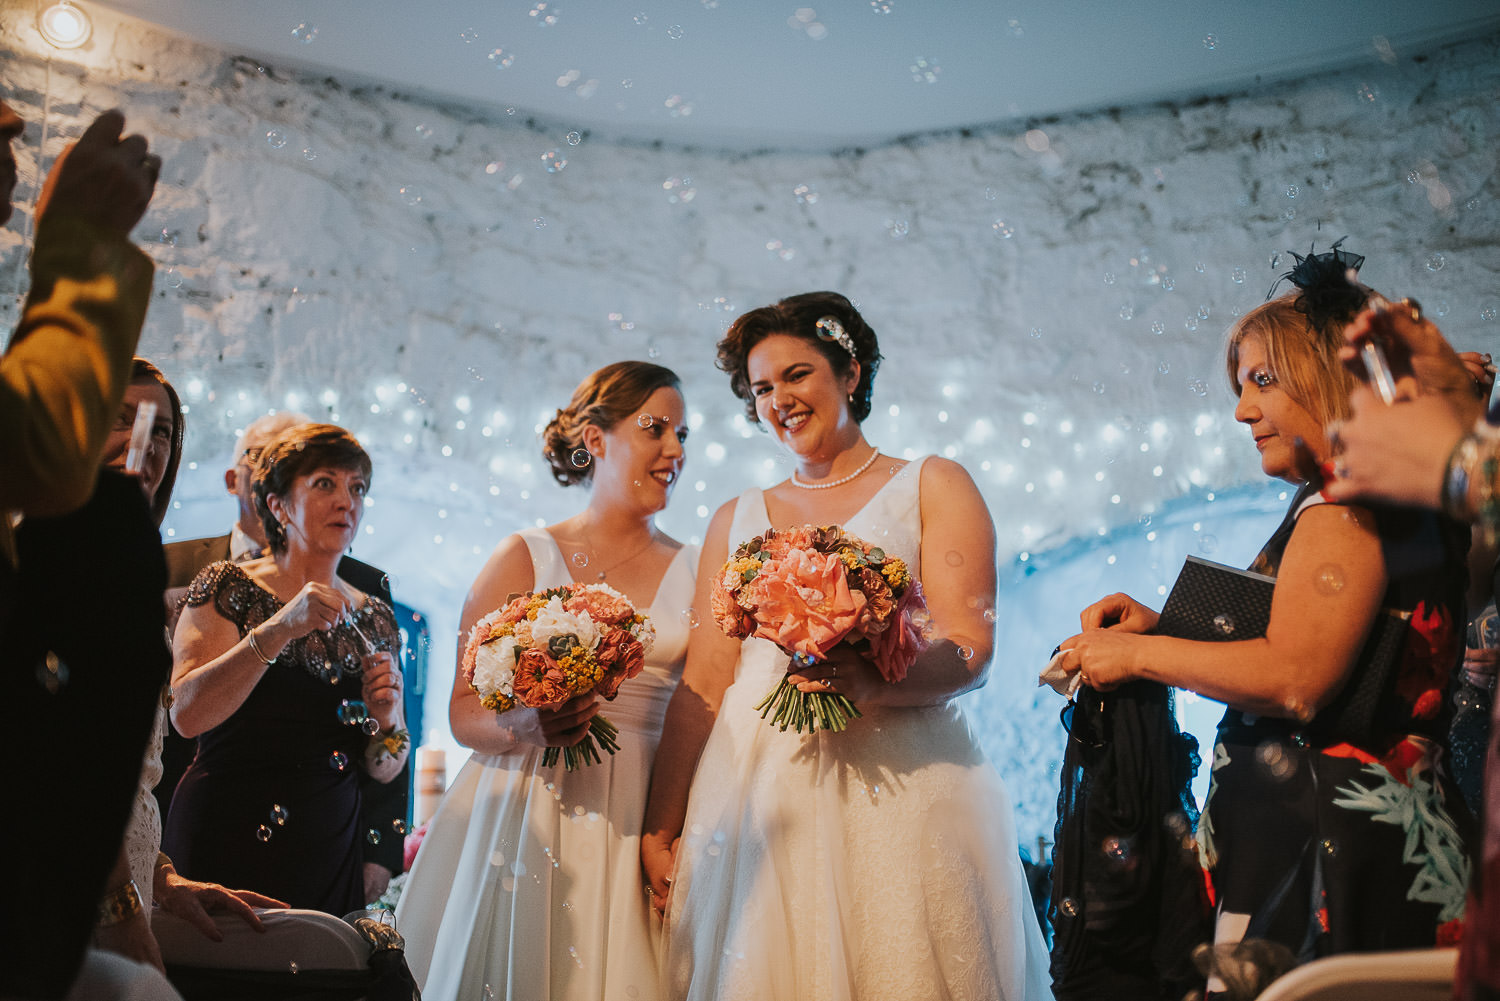 guests blowing bubbles as brides walk down the aisle